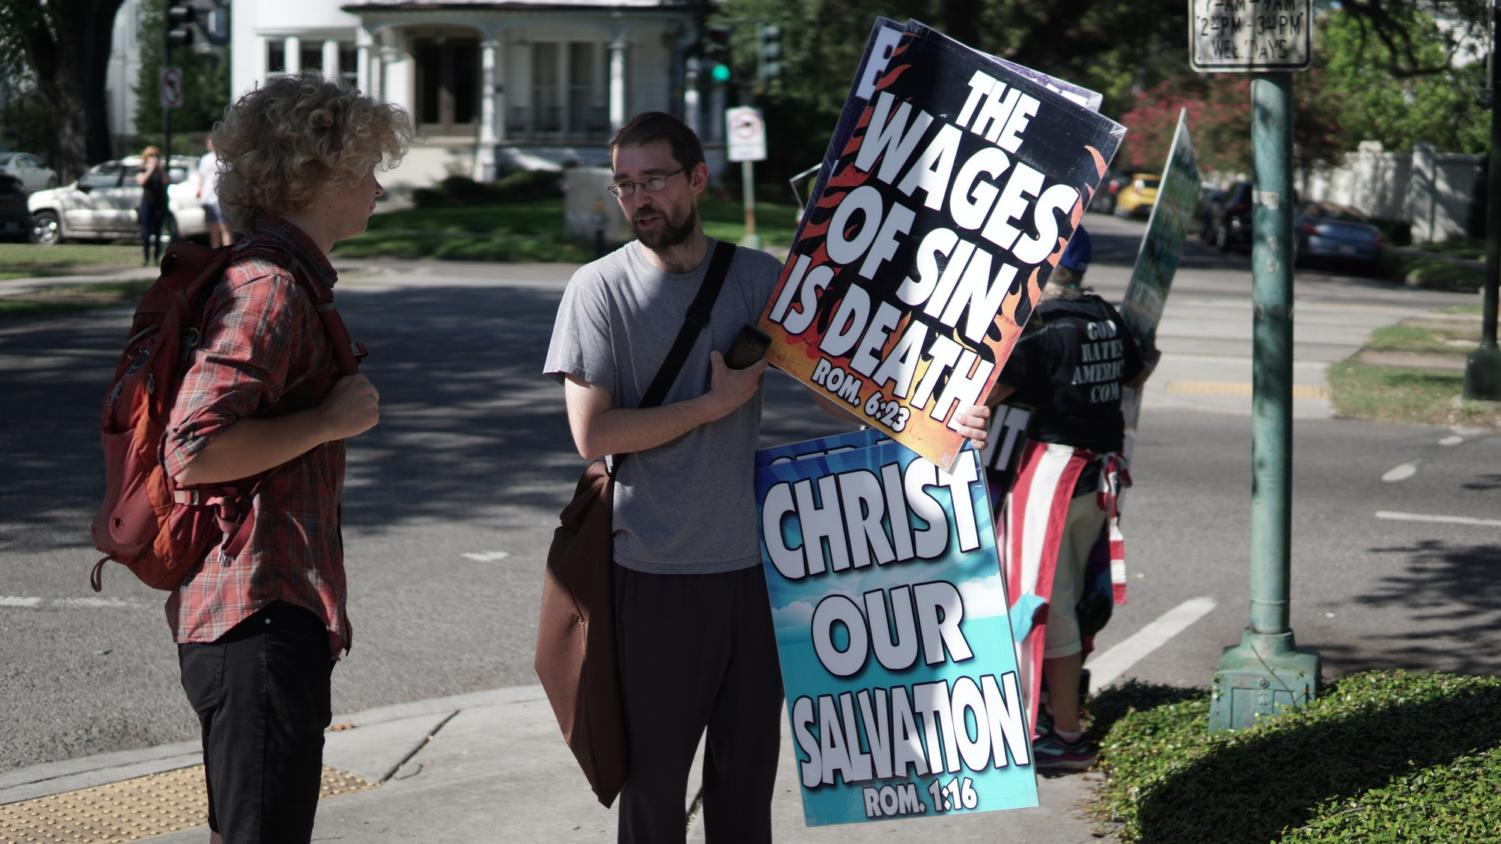 A Loyola student confronts a Westboro Baptist Church member on June 28, 2018. Photo credit: Jacob Meyer